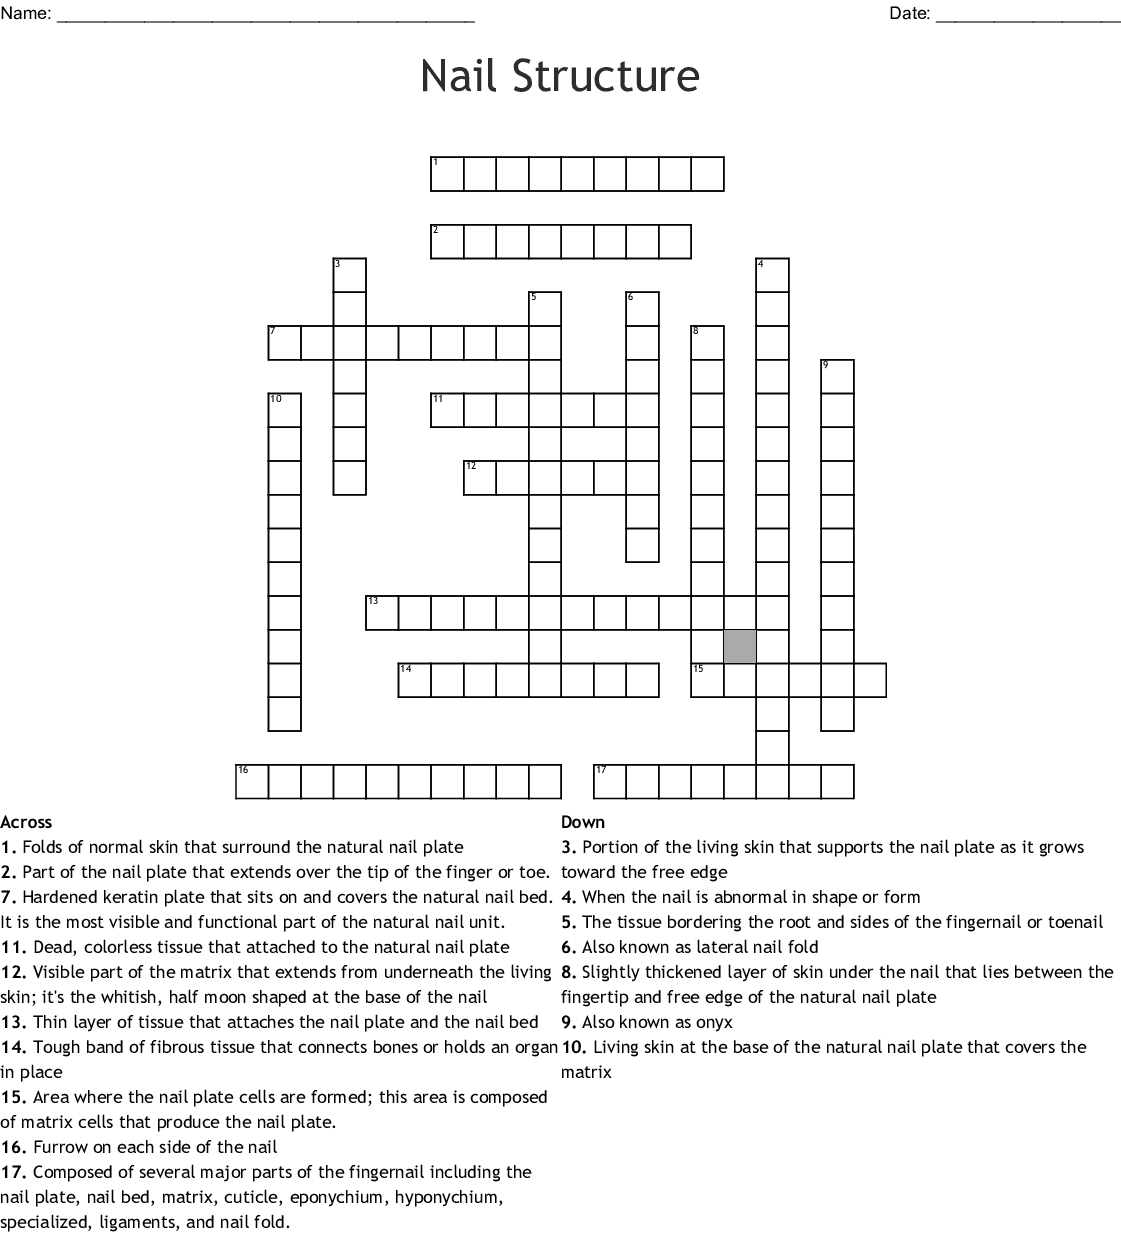 Nail Structure Crossword